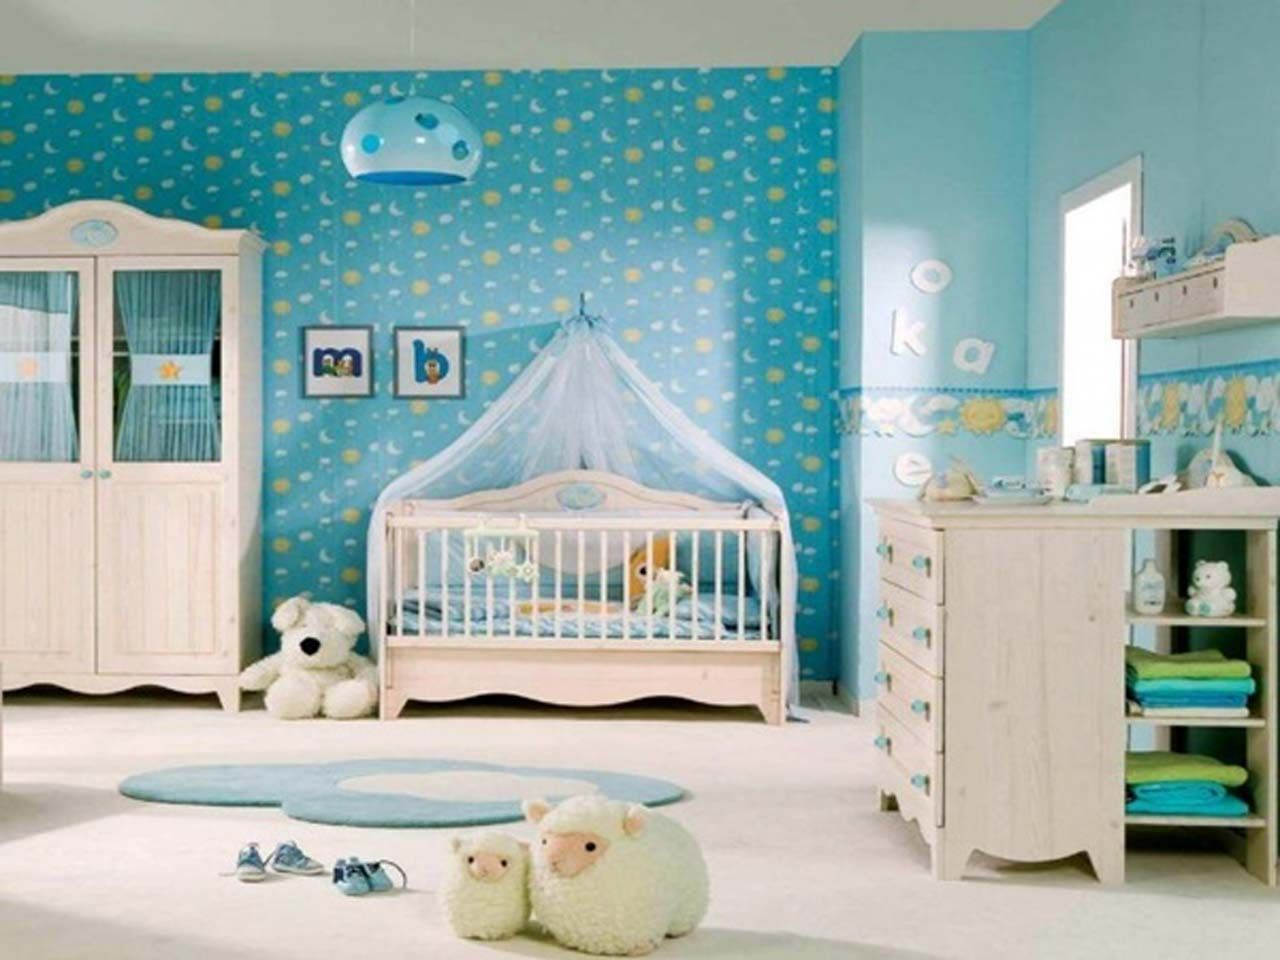 Creative Bedroom Design For Baby ~ http://www.lookmyhomes.com/creative-bedroom-design-for-baby/